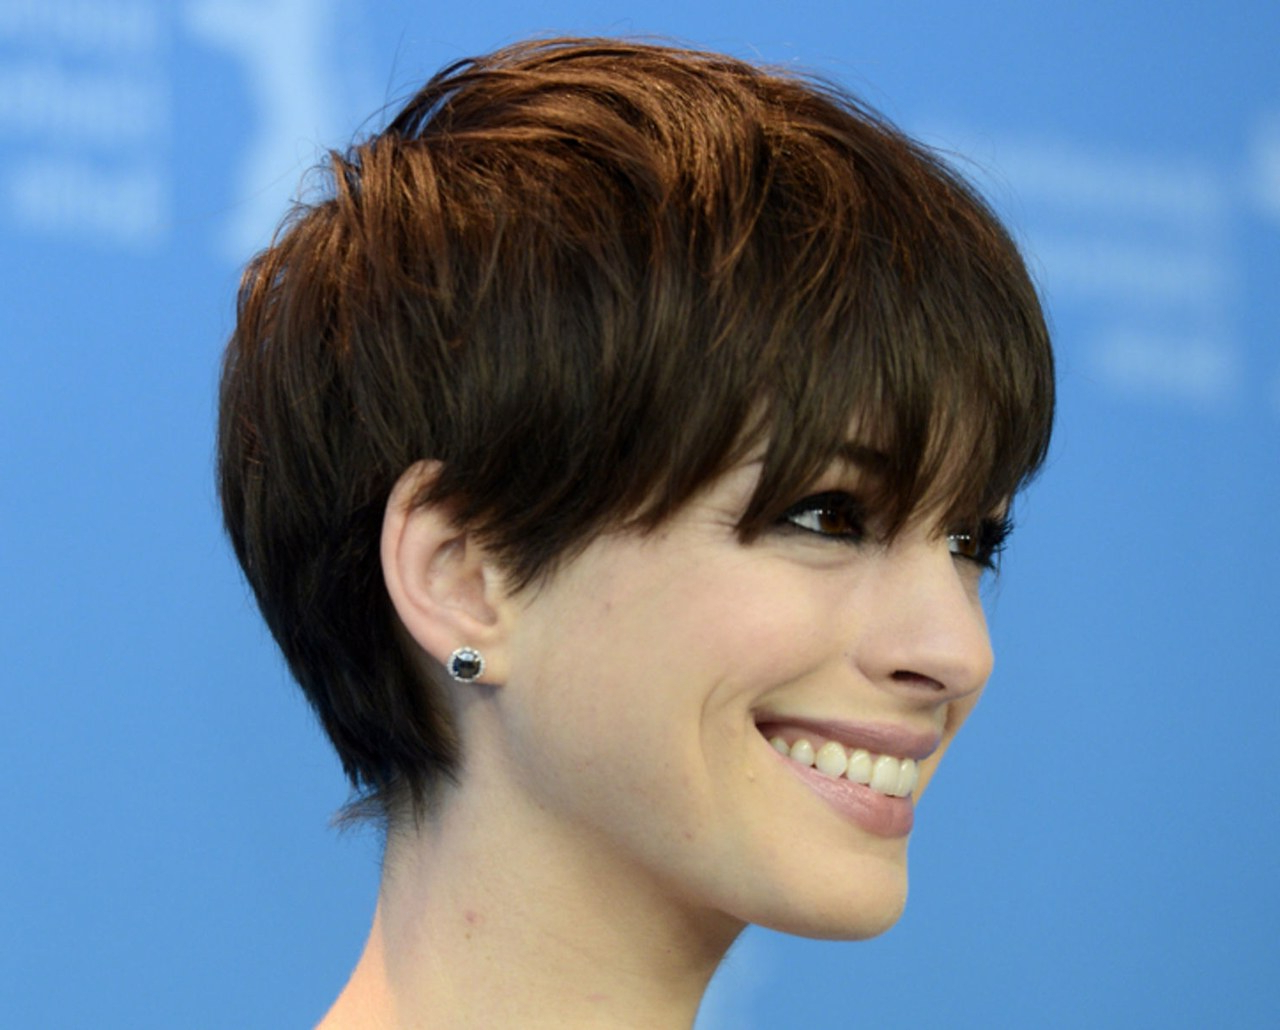 Anne Hathaway Has The Best Bangs I've Seen In A Long Time | Glamour Inside Anne Hathaway Short Haircuts (View 7 of 25)